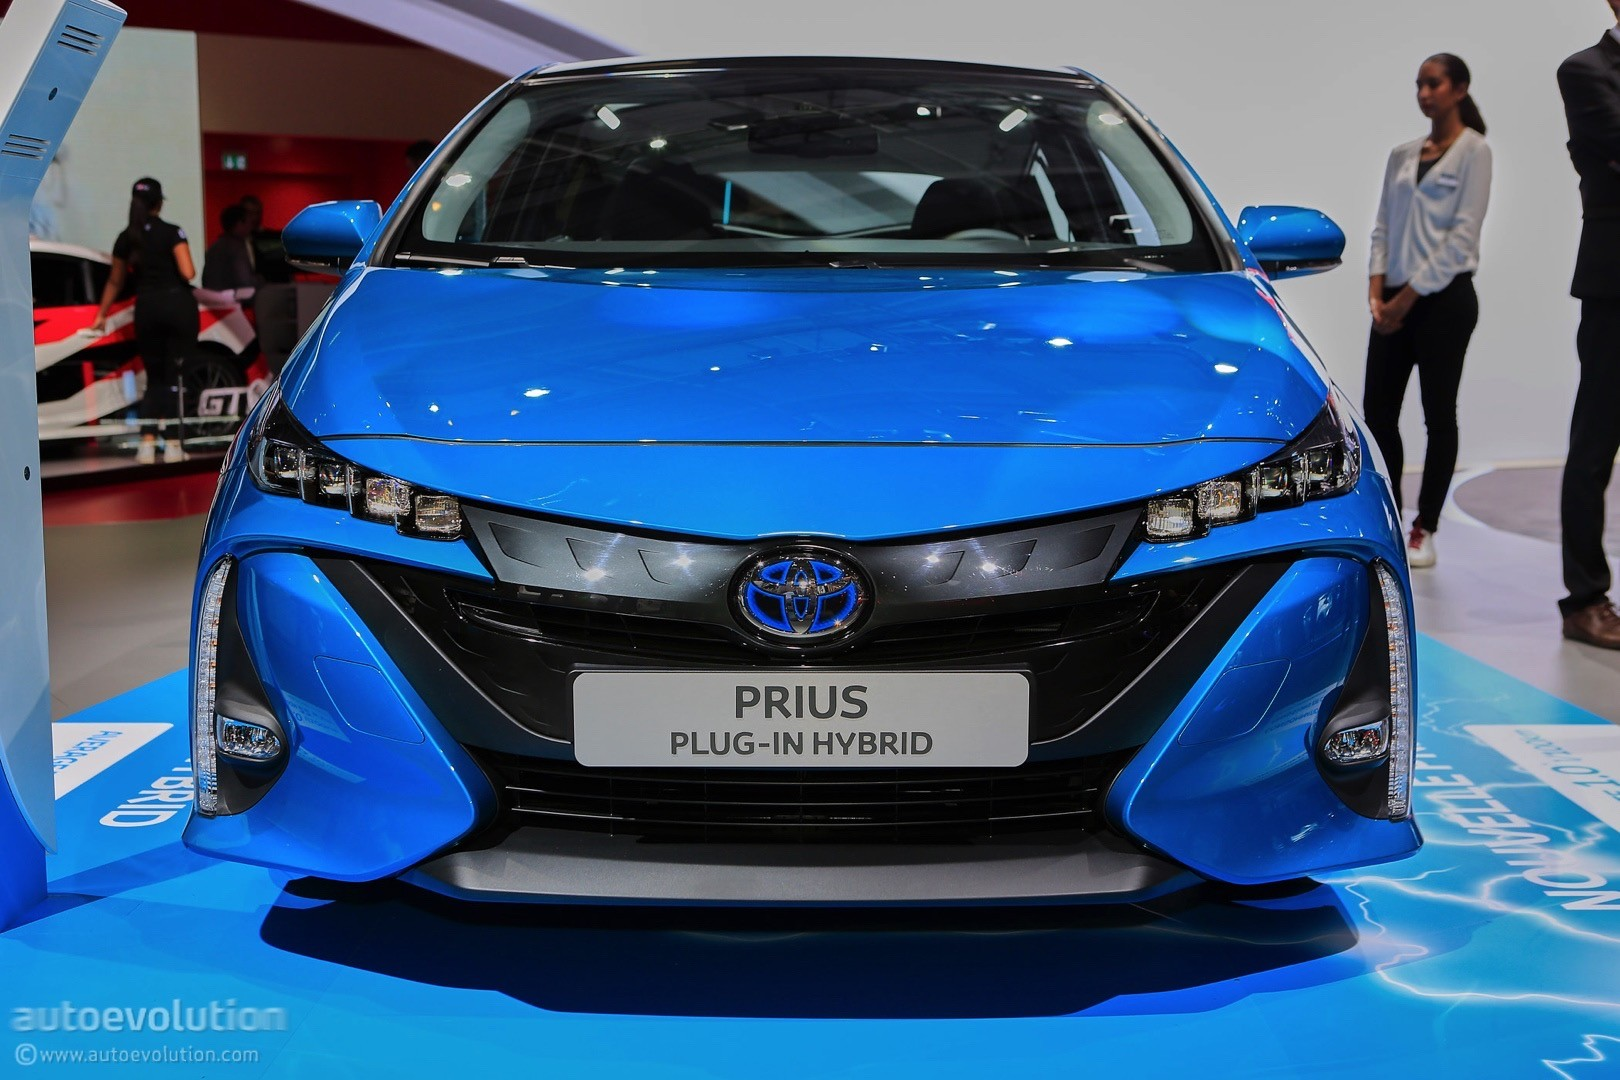 2017 toyota prius plug in hybrid gets different name for europe adds solar roof autoevolution. Black Bedroom Furniture Sets. Home Design Ideas